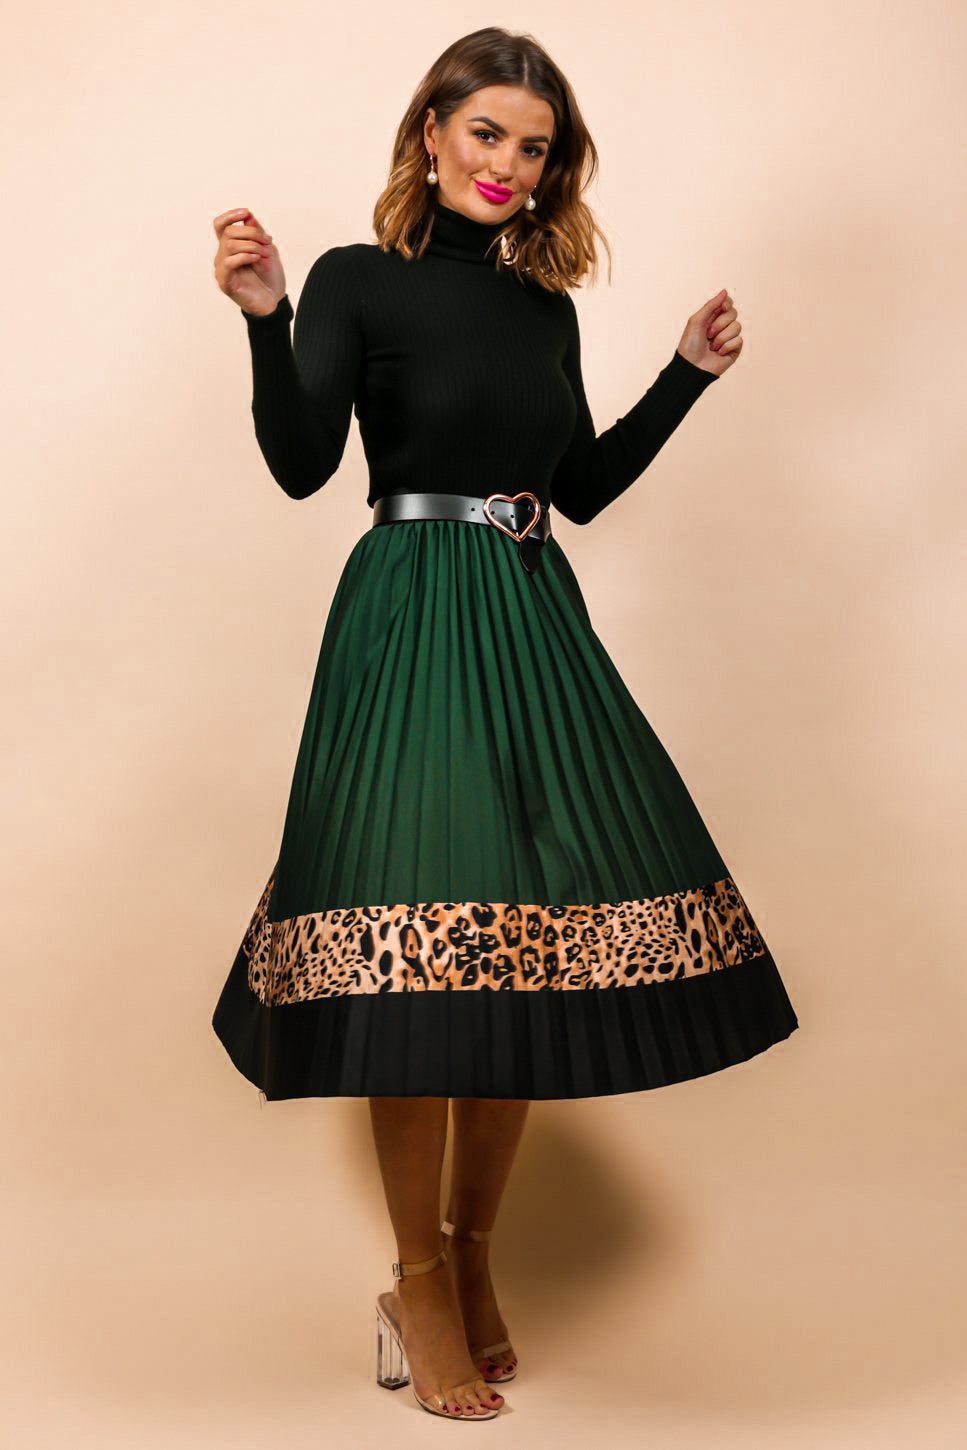 Best Pleat In The House - Midi Skirt In FOREST/LEOPARD